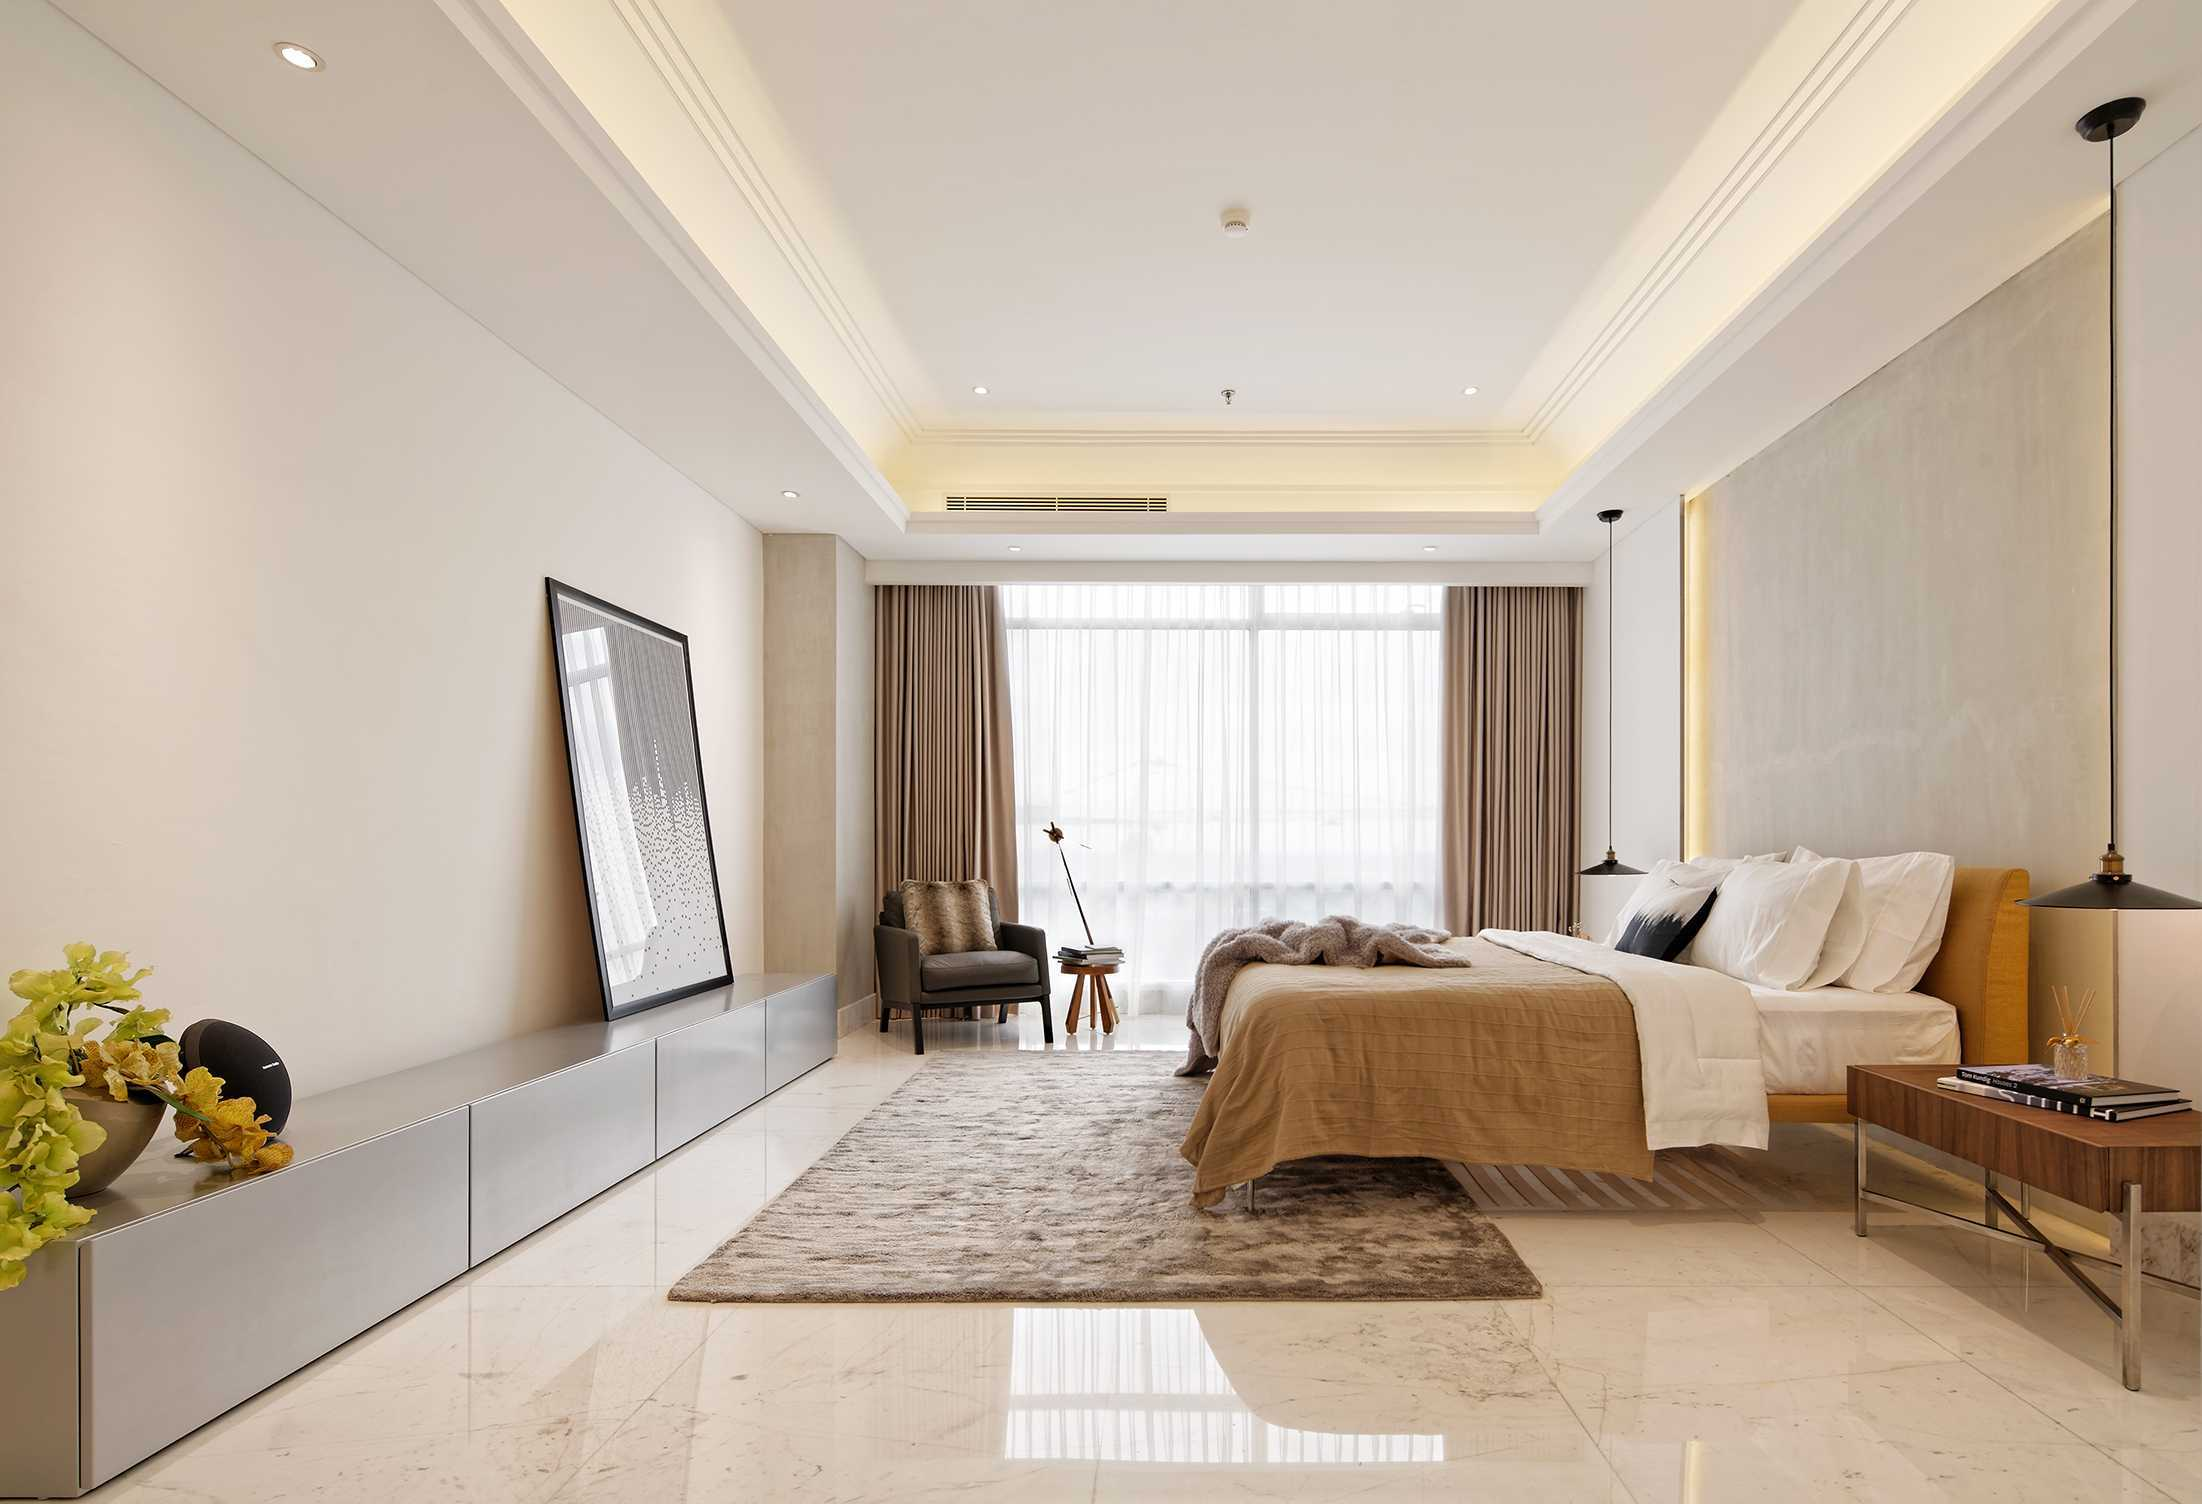 Sontani Partners 11A Residence South Jakarta, Indonesia South Jakarta, Indonesia Master Bedroom Kontemporer,industrial,wood,modern  21403